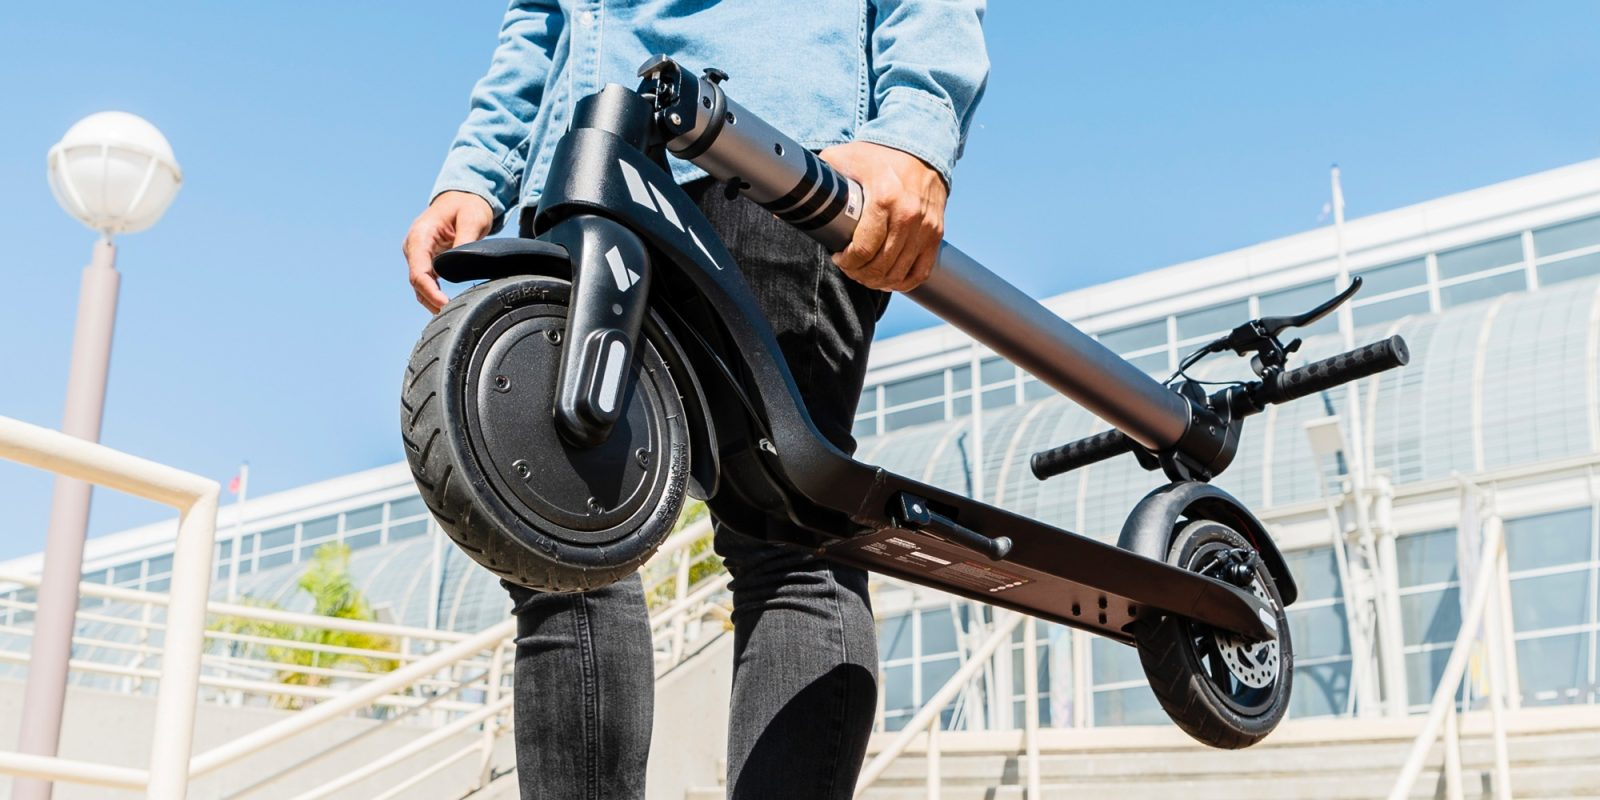 Swagtron unveils two new low cost electric scooters for $199 and $399